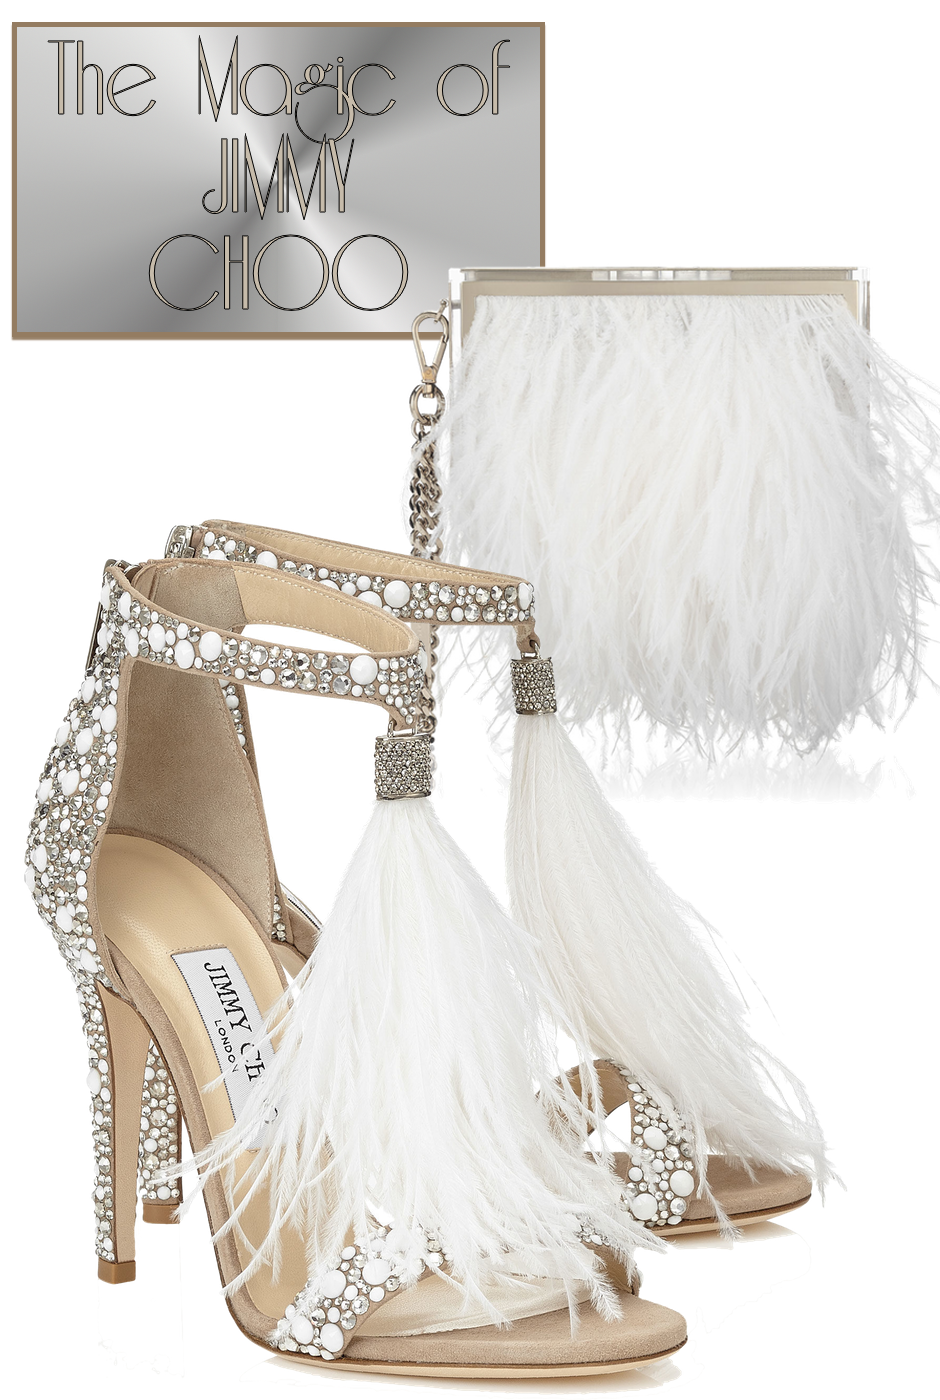 Jimmy Choo Viola 110 and Box Bag with Ostrich Feathers